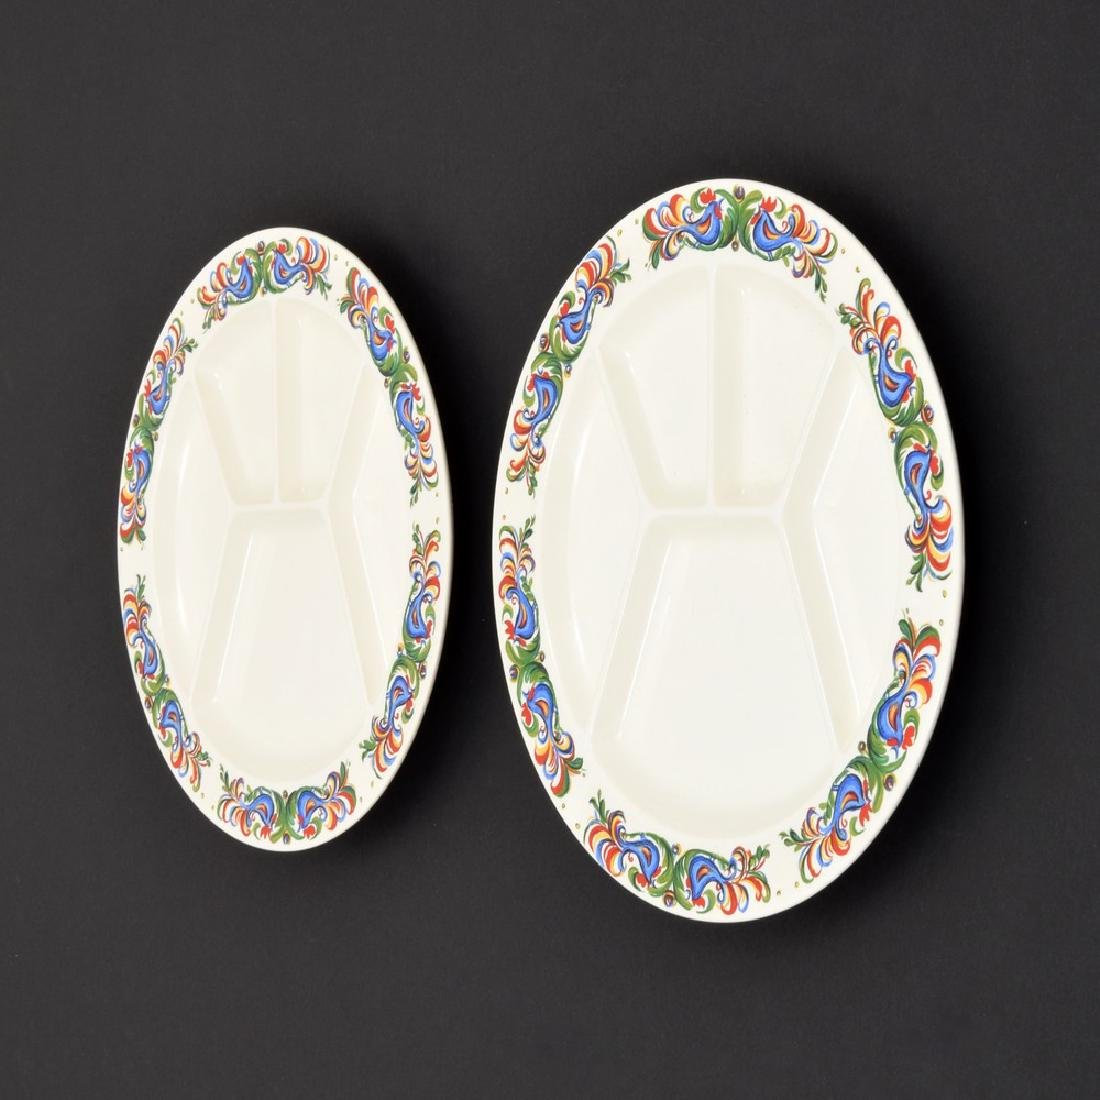 Pair of Villeroy & Boch Sectioned/Fondue Plates - 2